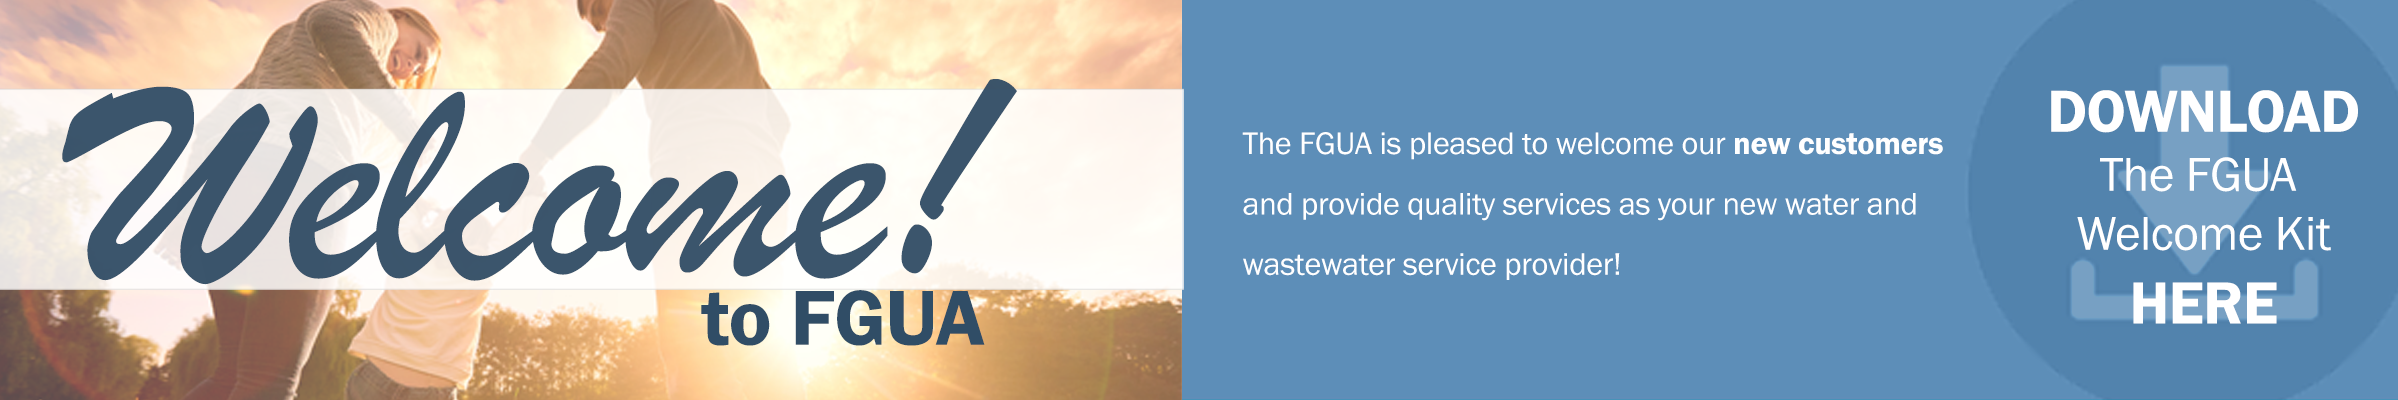 Welcome to FGUA. The FGUA is pleased to welcome our new customers and provide quality services as your new water and wastewater service provider. Download the FGUA welcome kit here.